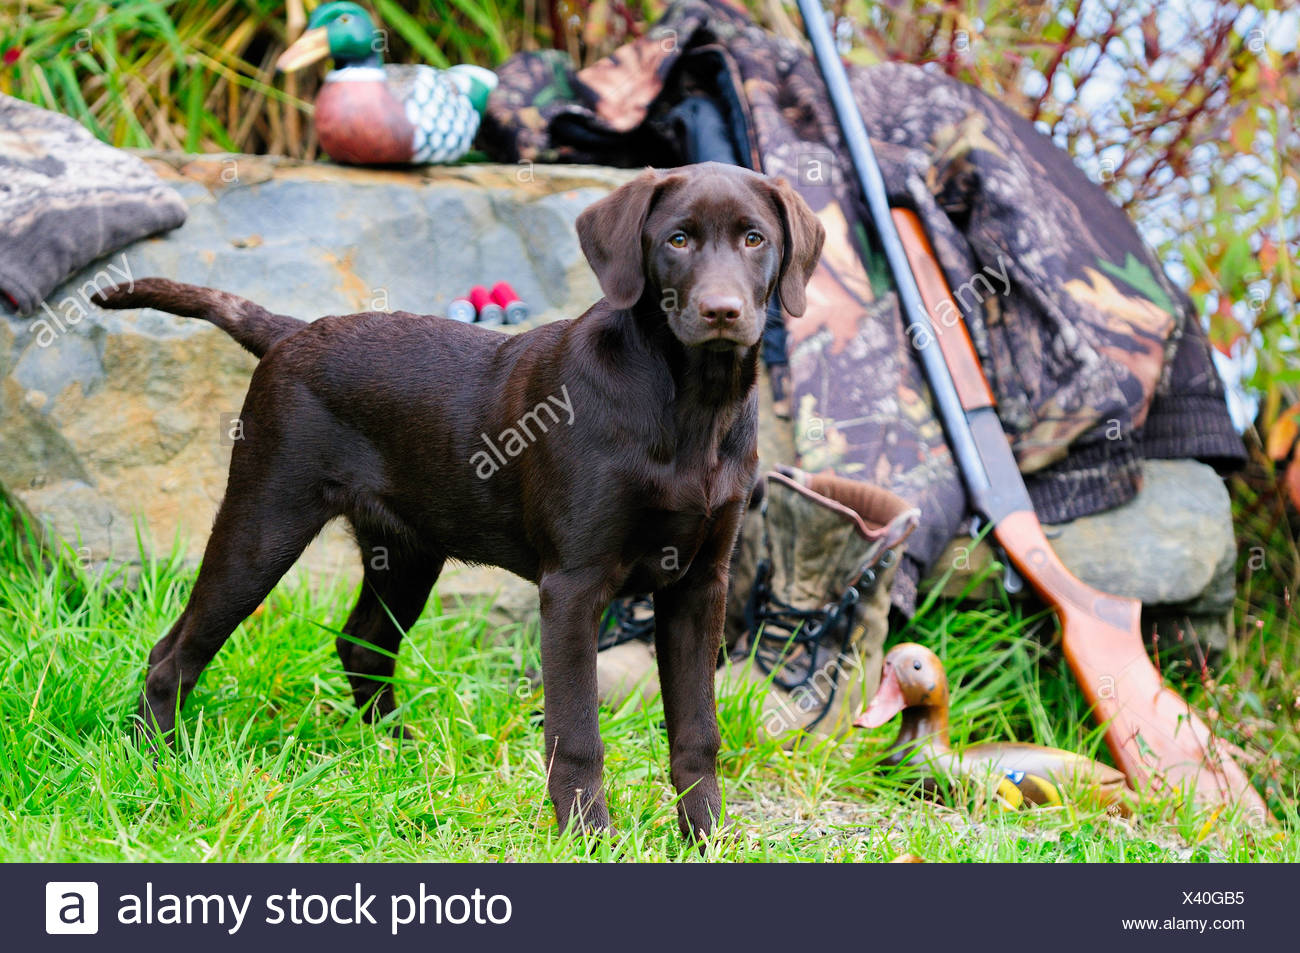 Chocolate Lab beside a Cooey12 gauge single shot shotgun, a camouflage jacket and boots, Duncan, British Columbia, Canada. - Stock Image